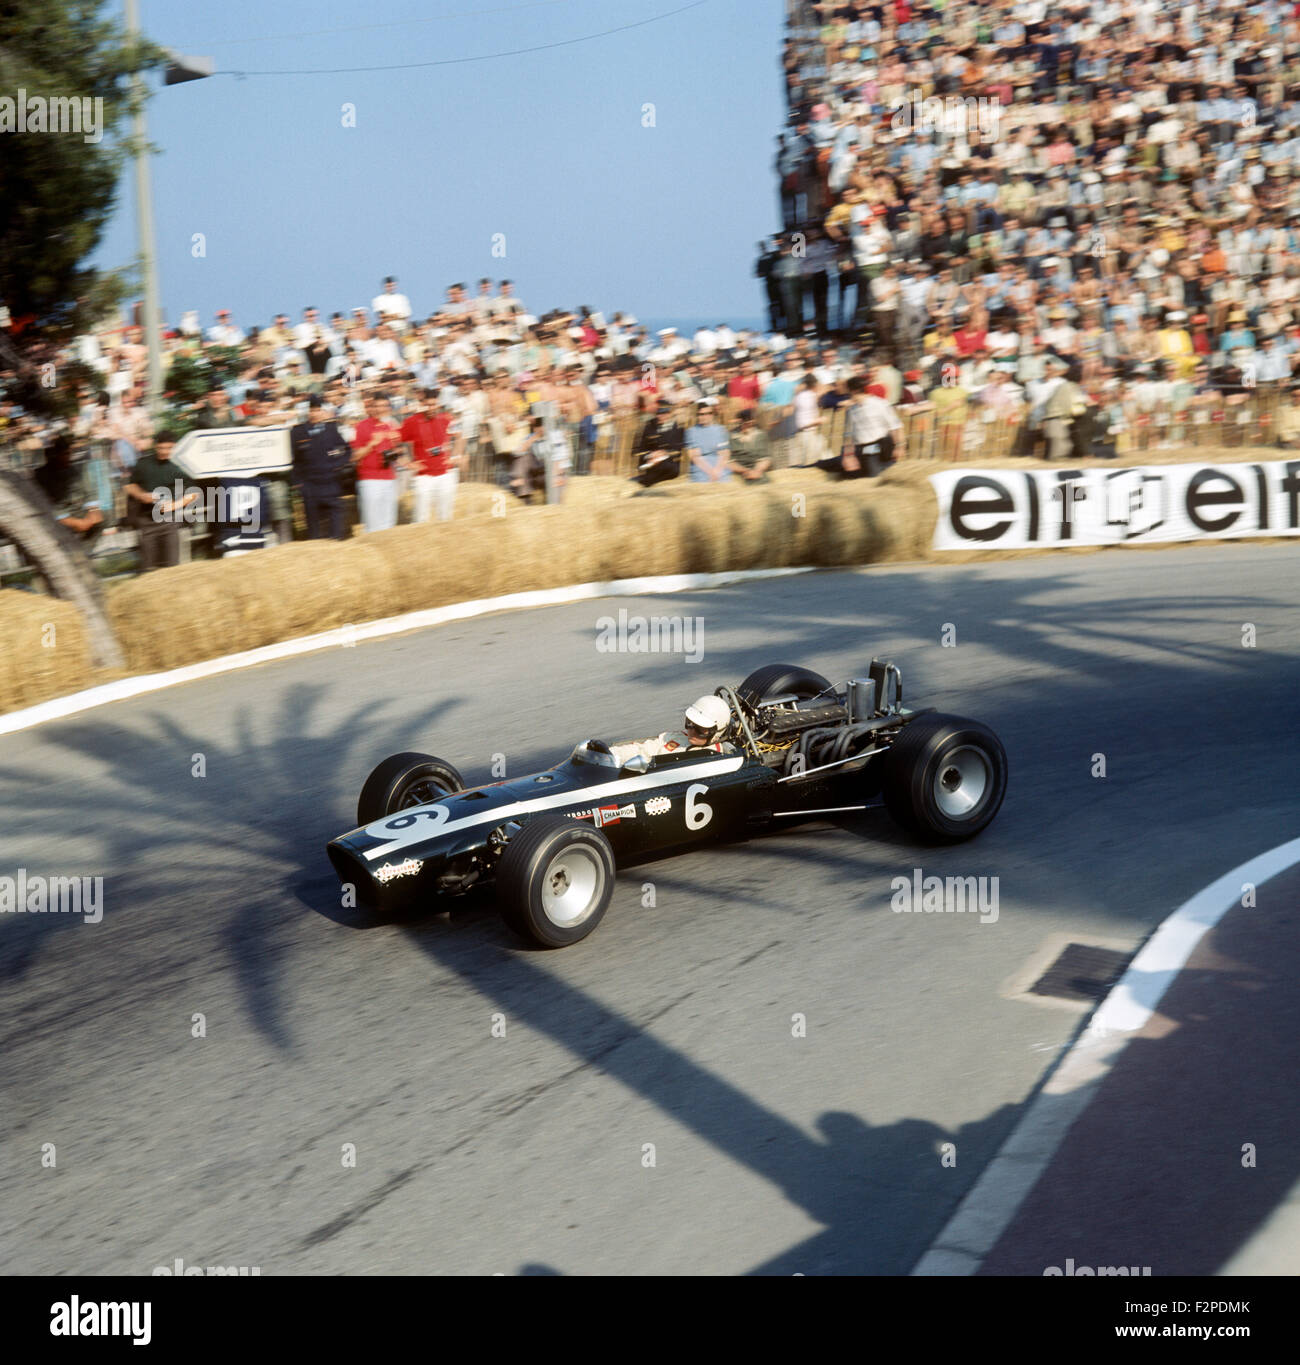 Mike Spence in a Lotus BRM 25 at the Monaco GP,22 May 1966 - Stock Image